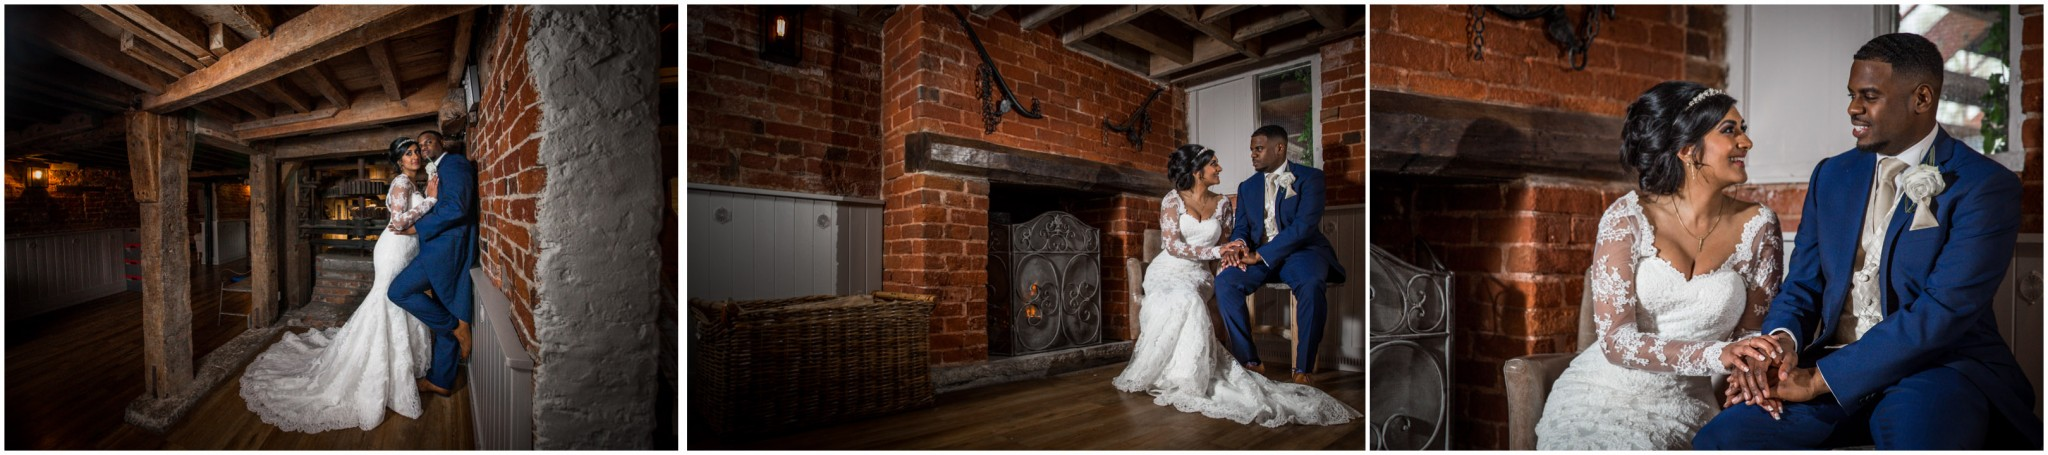 Sopley Mill Wedding Reception Bride & Groom portraits